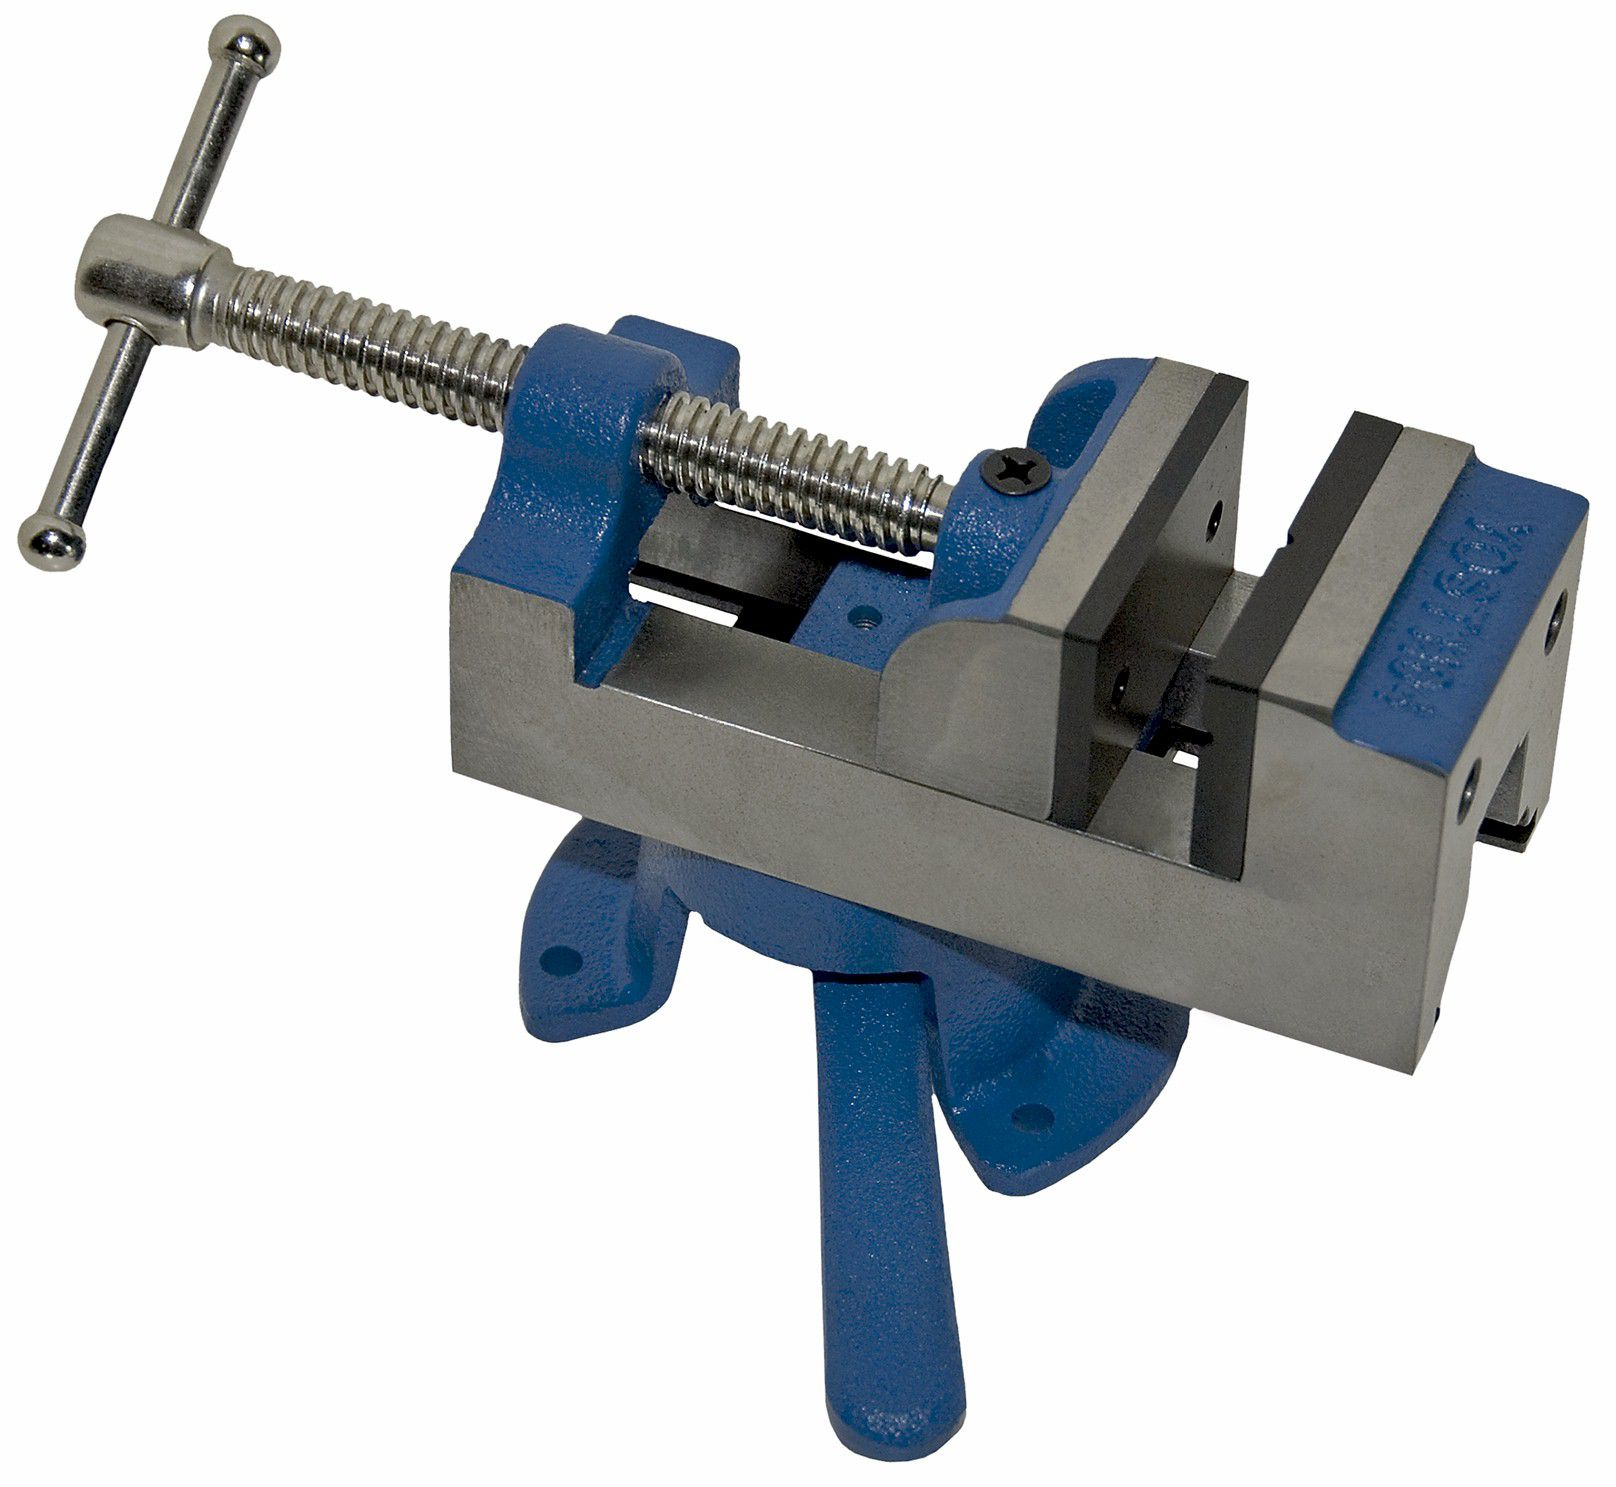 "Yost 1104 - 2-1/2"" Drill Press Vise with Removable Base"